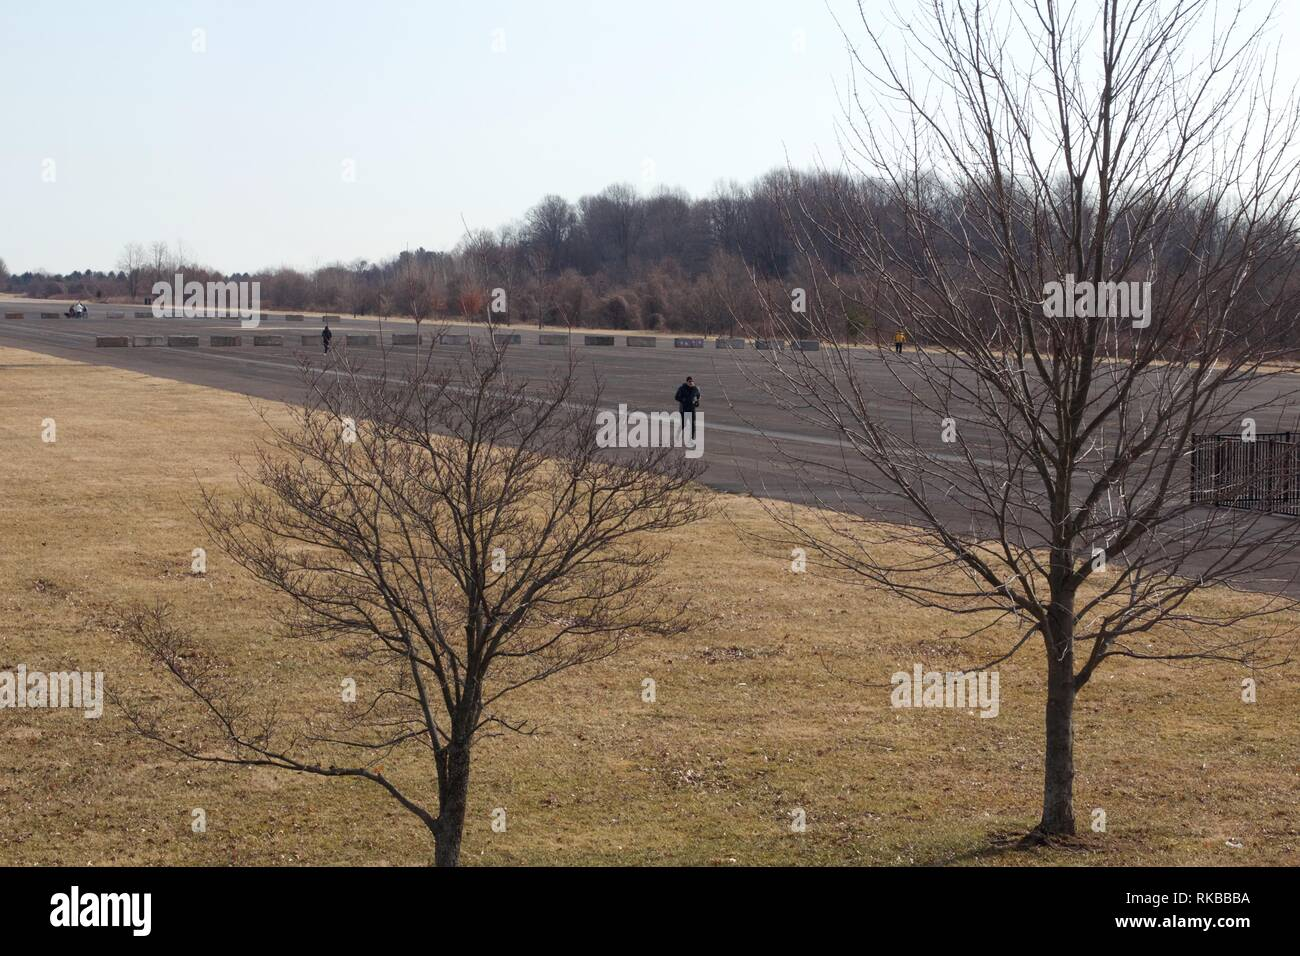 Warminster, Pennsylvania / USA - February 6, 2019: A community park occupies the site of the former Naval Air Warfare Center Warminster military base. - Stock Image